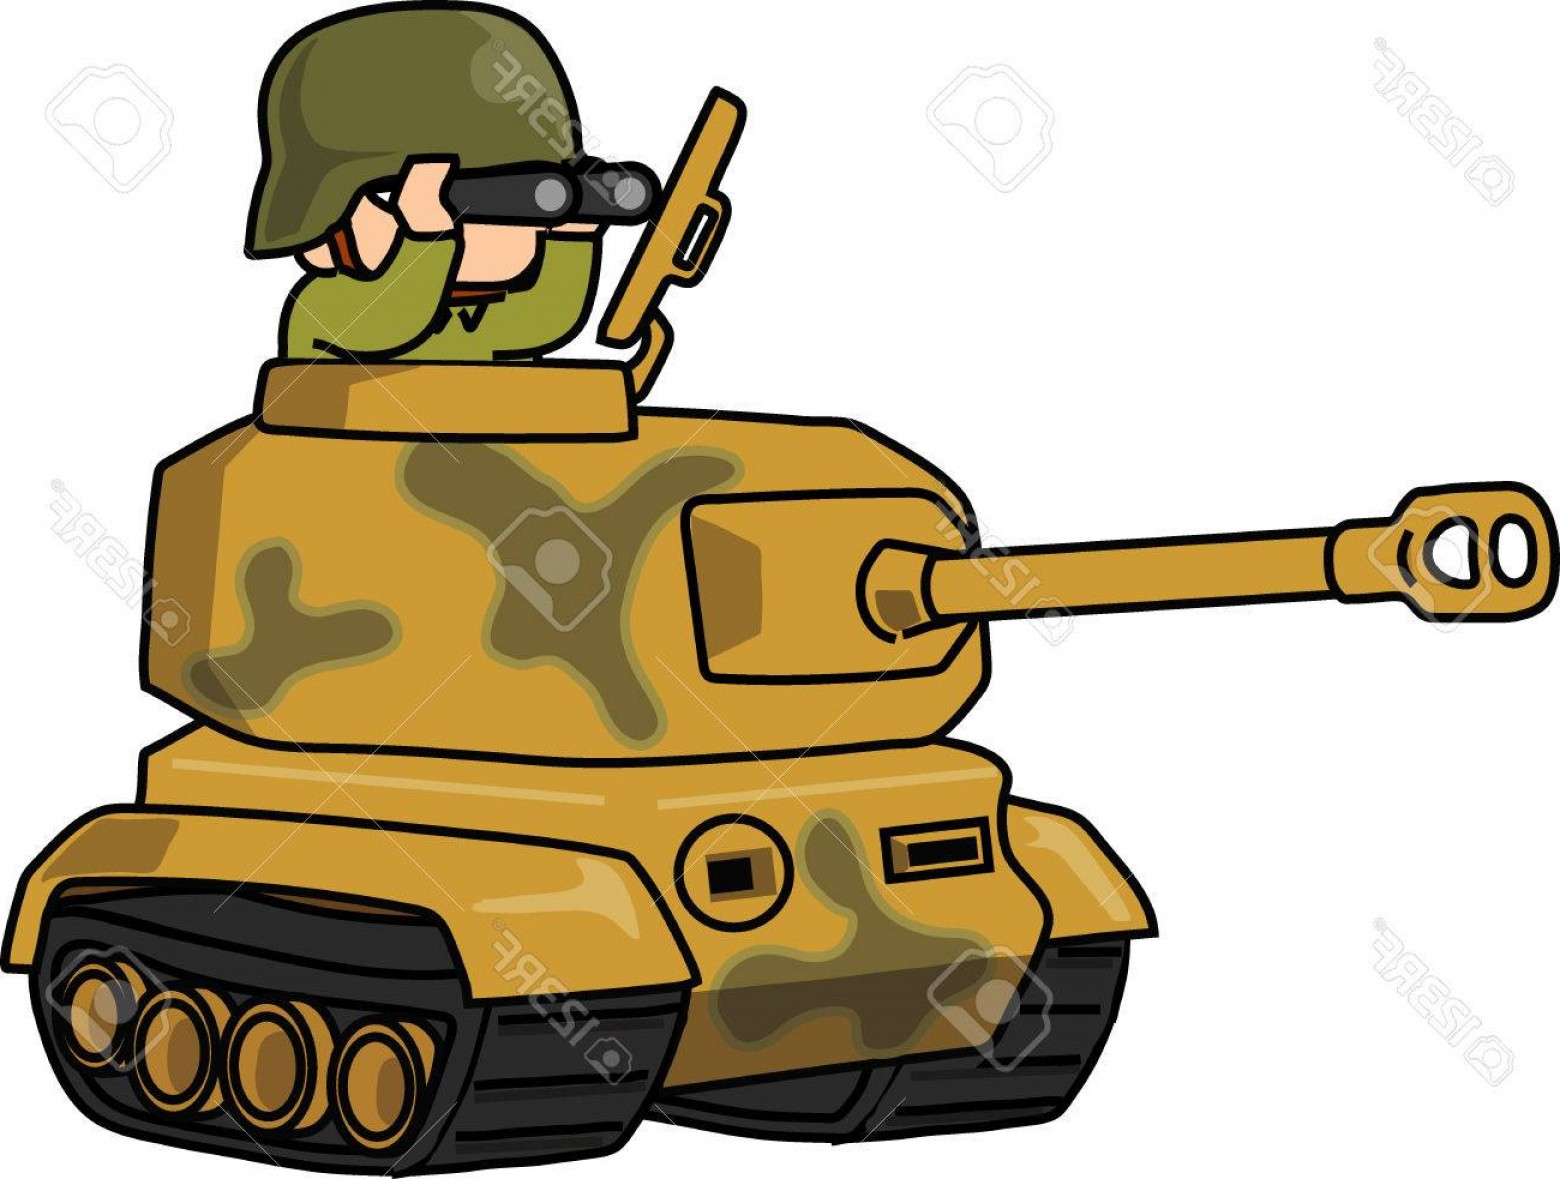 Ww2 tanks cartoon clipart clipart free download Photostock Vector Cartoon Army With Tiger Tank Vector ... clipart free download